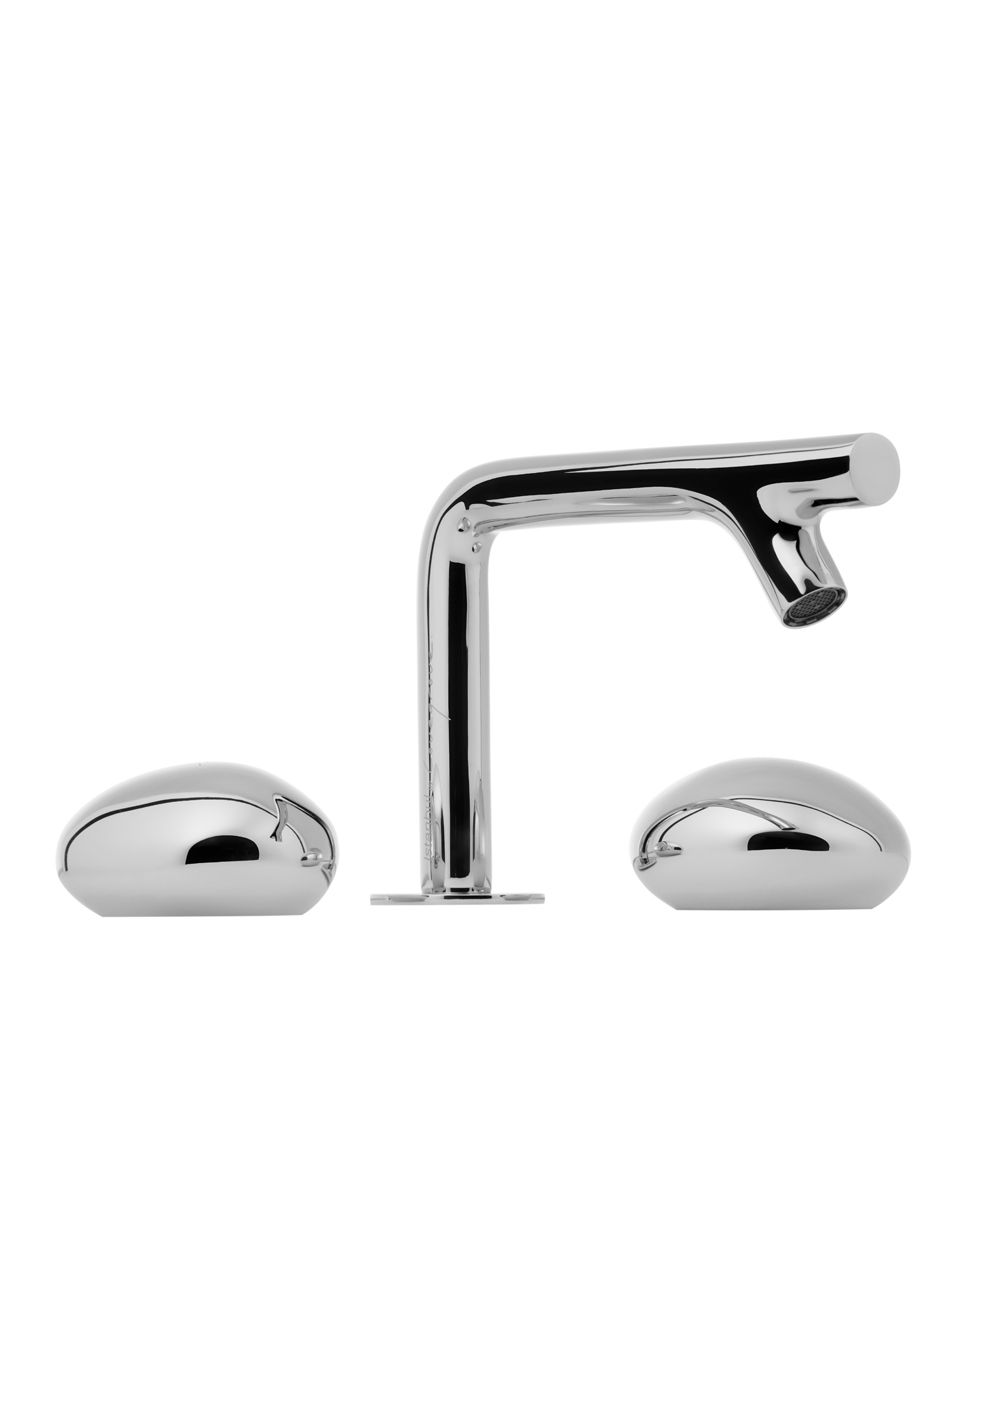 Istanbul Faucet By Ross Lovegrove Vitra Bathroom Icons 2006